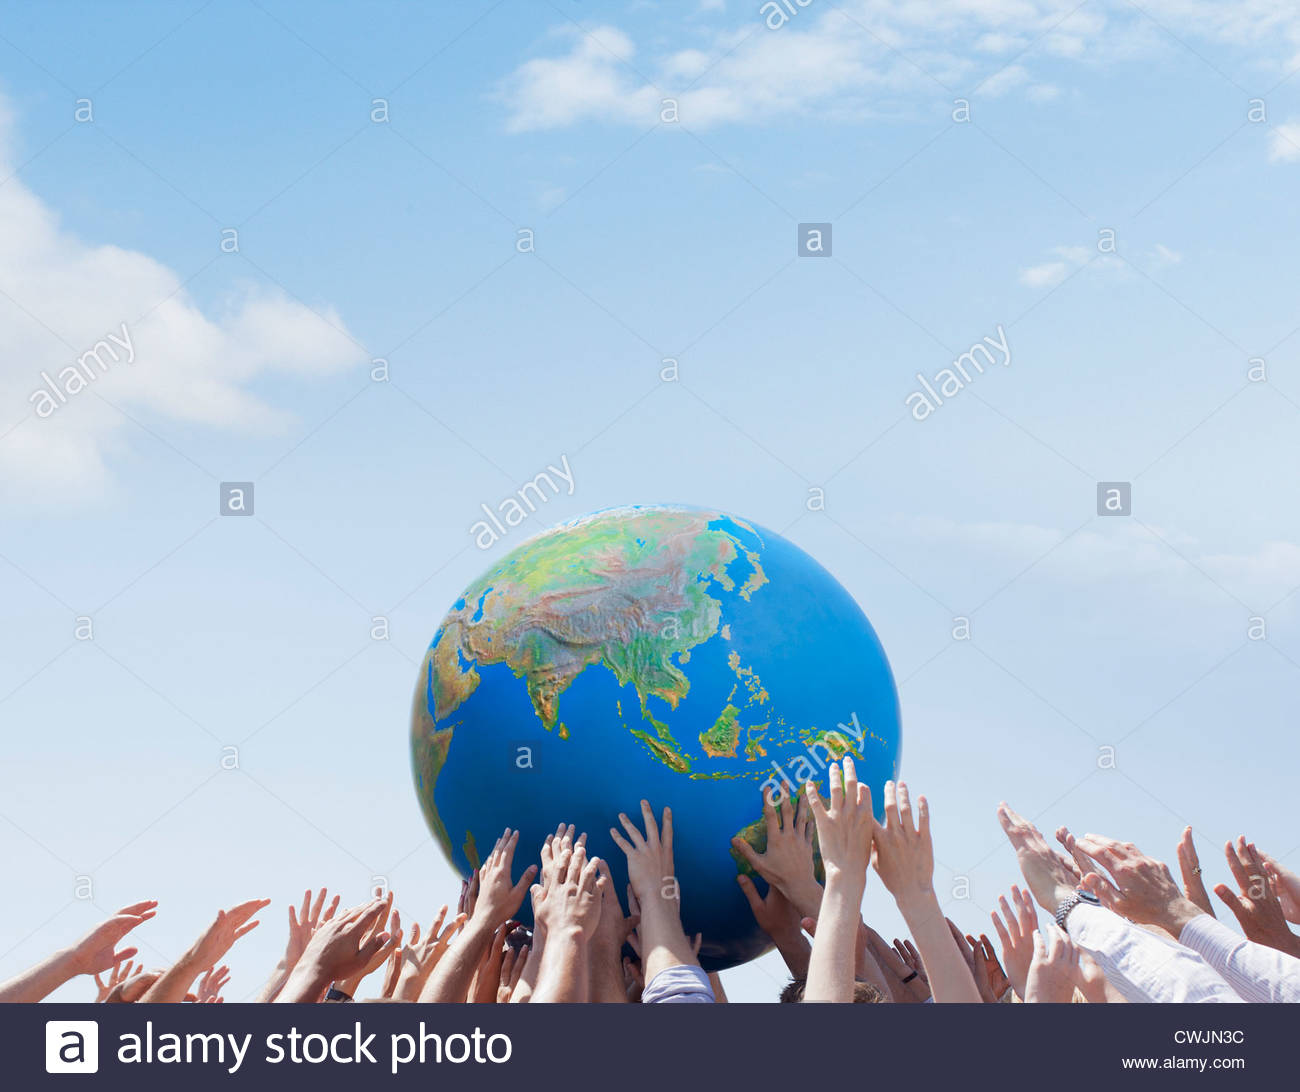 Crowd reaching for globe - Stock Image